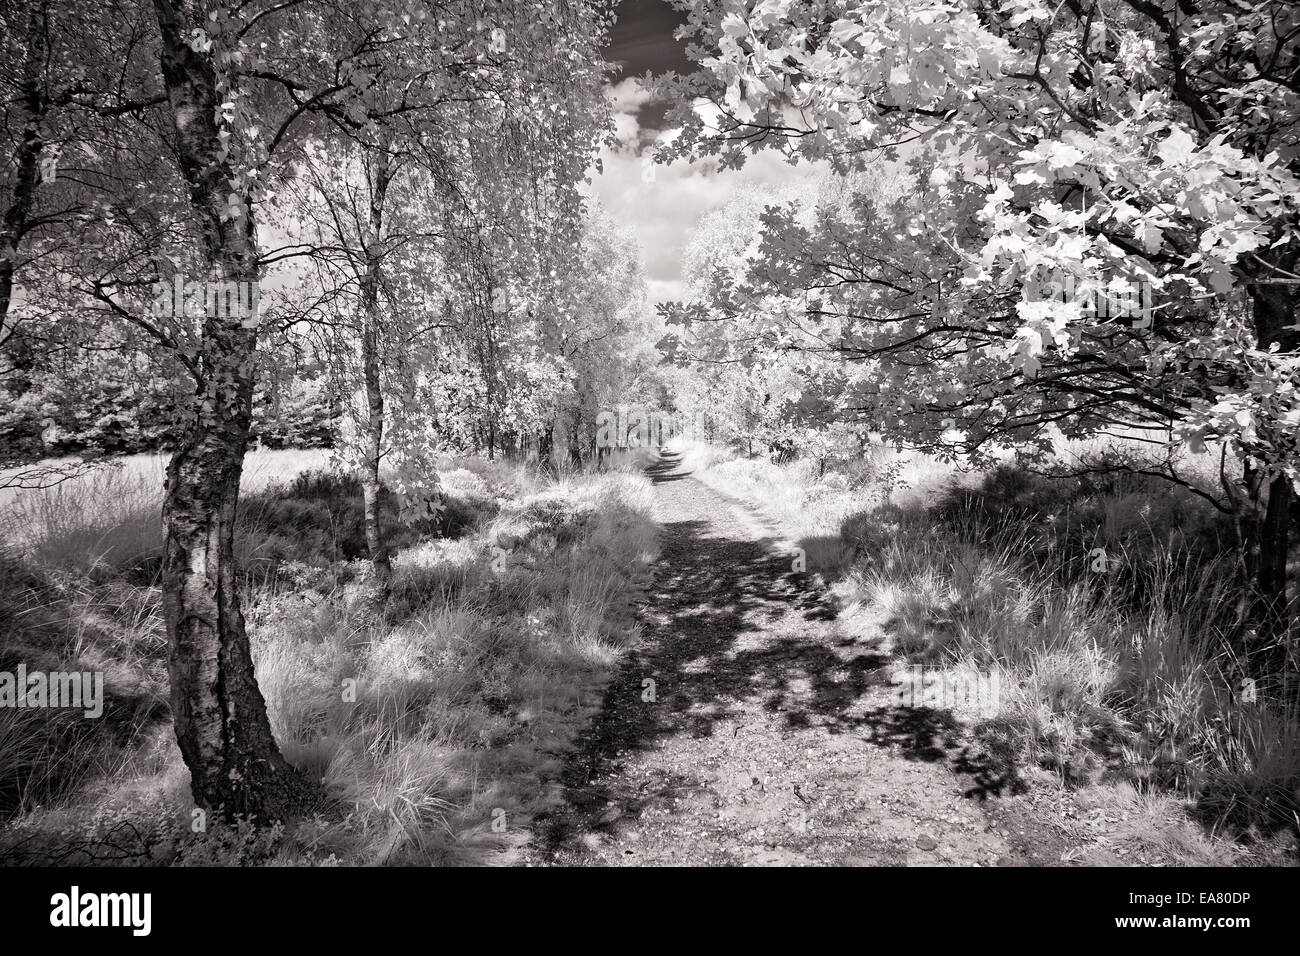 Black and white infrared image of a cannock chase landscape in an area of outstanding natural beauty staffordshire england